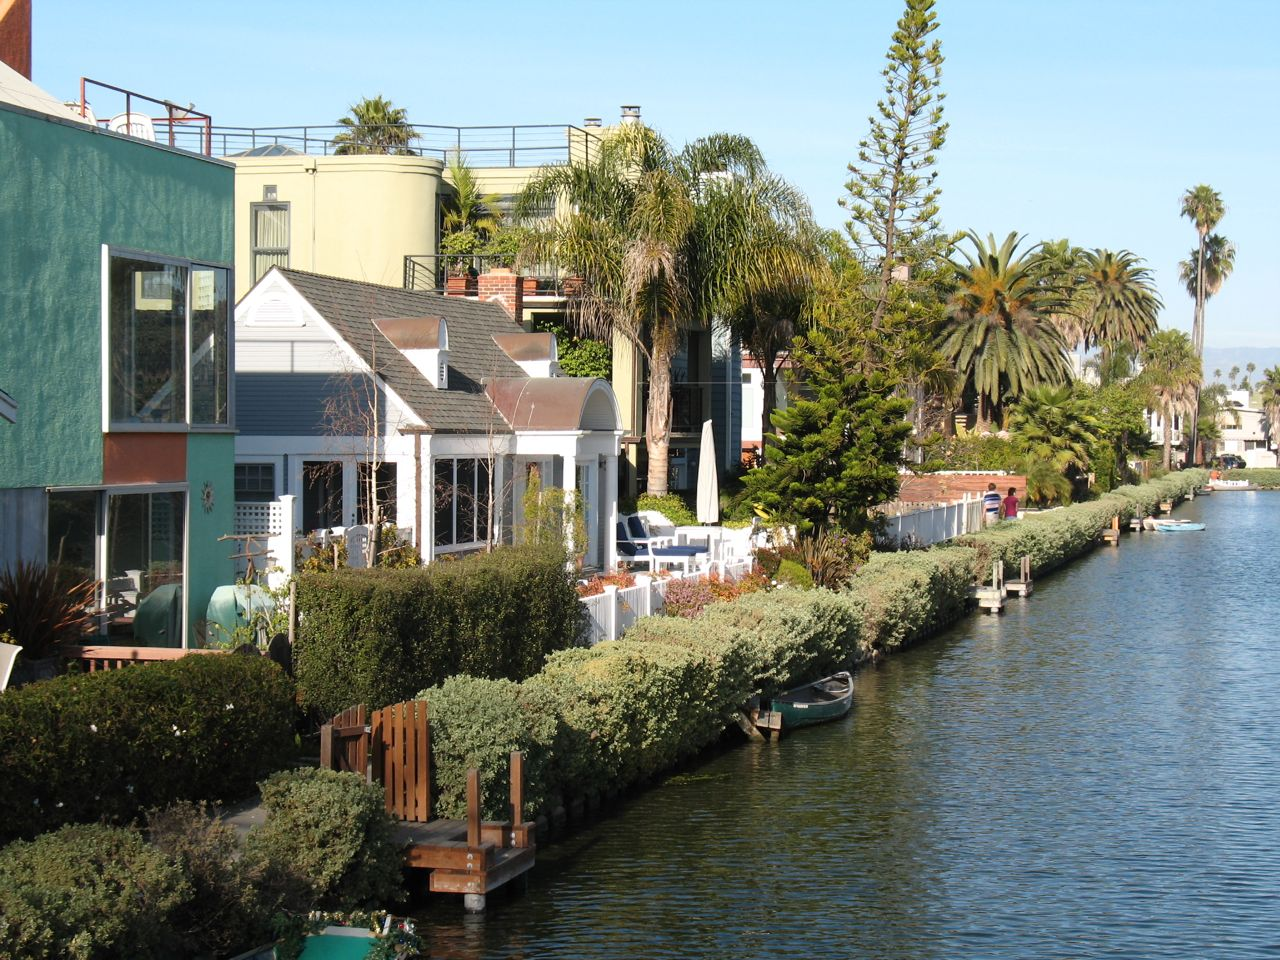 https://i0.wp.com/www.alicesgardentravelbuzz.com/wp-content/uploads/2011/03/Venice-California-Canal-Photo-Alice-Joyce1.jpg